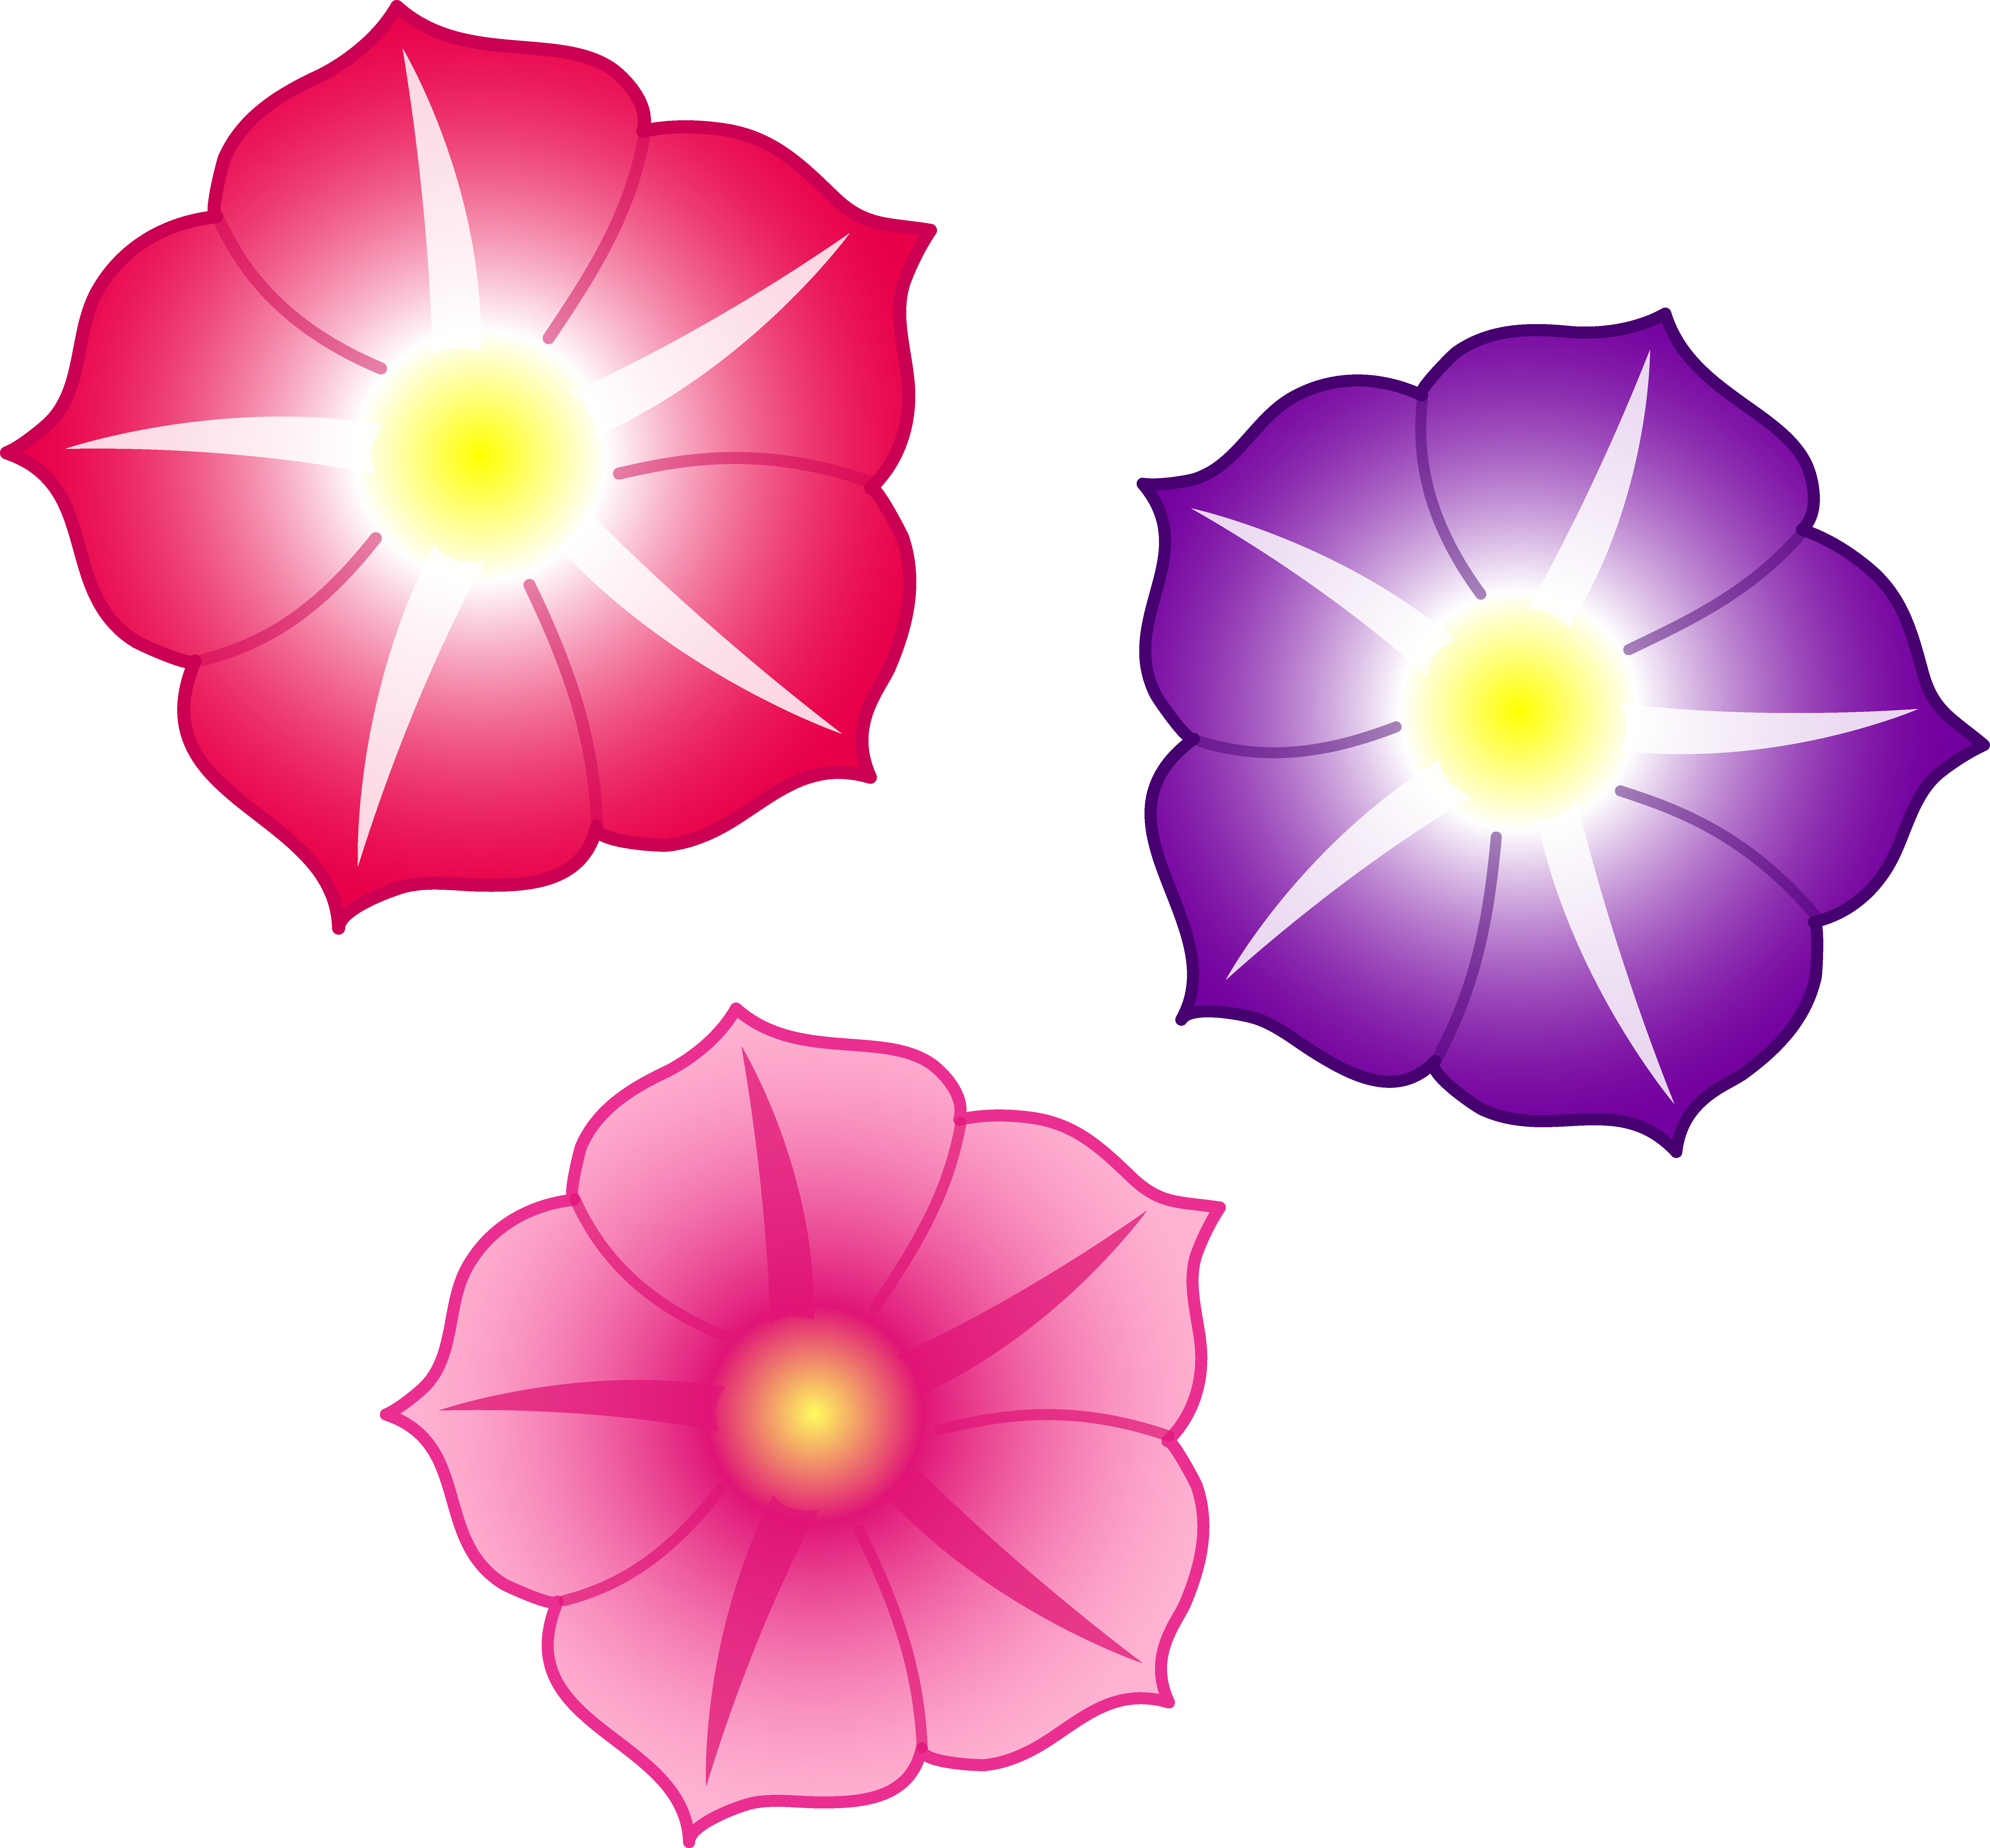 Colorful flower clipart svg black and white stock Petunian Flowers Clipart svg black and white stock